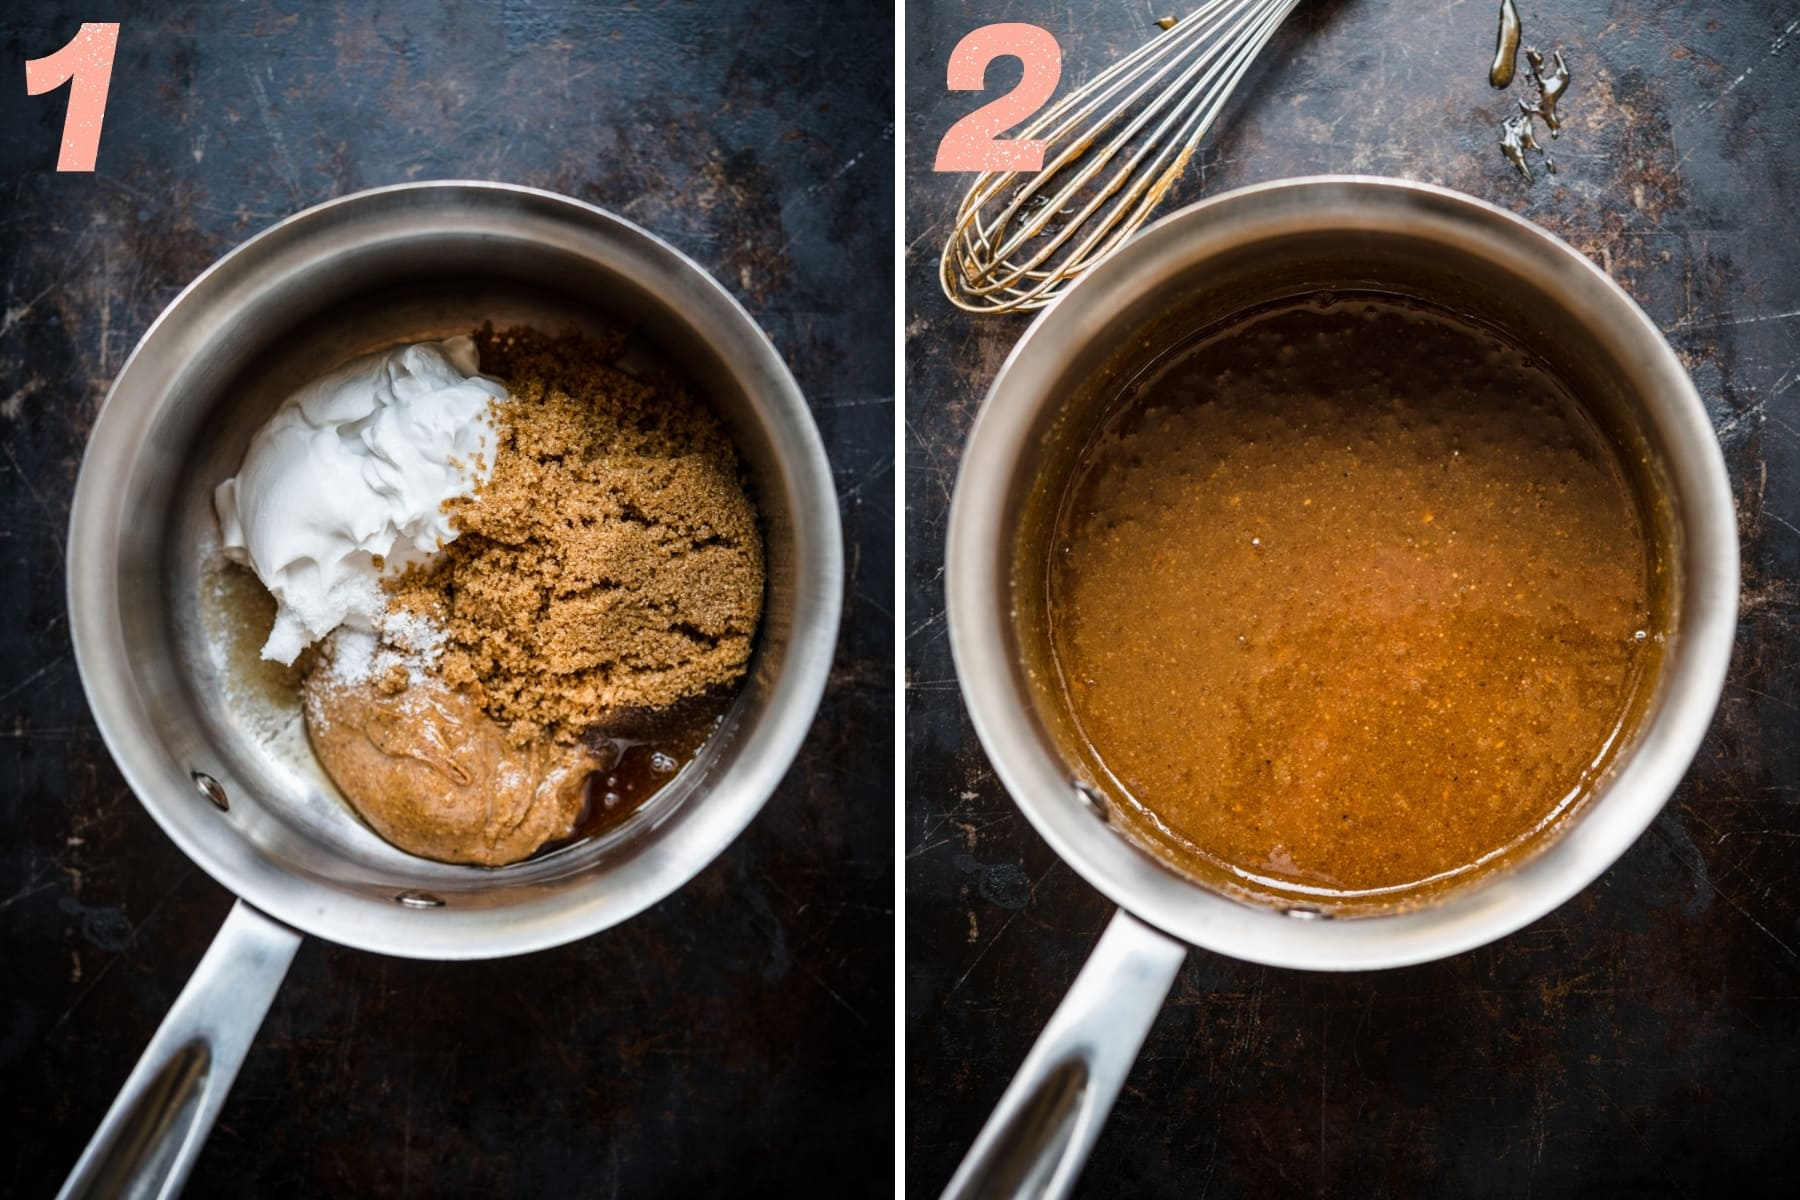 before and after whisking together ingredients for vegan caramel in saucepan.